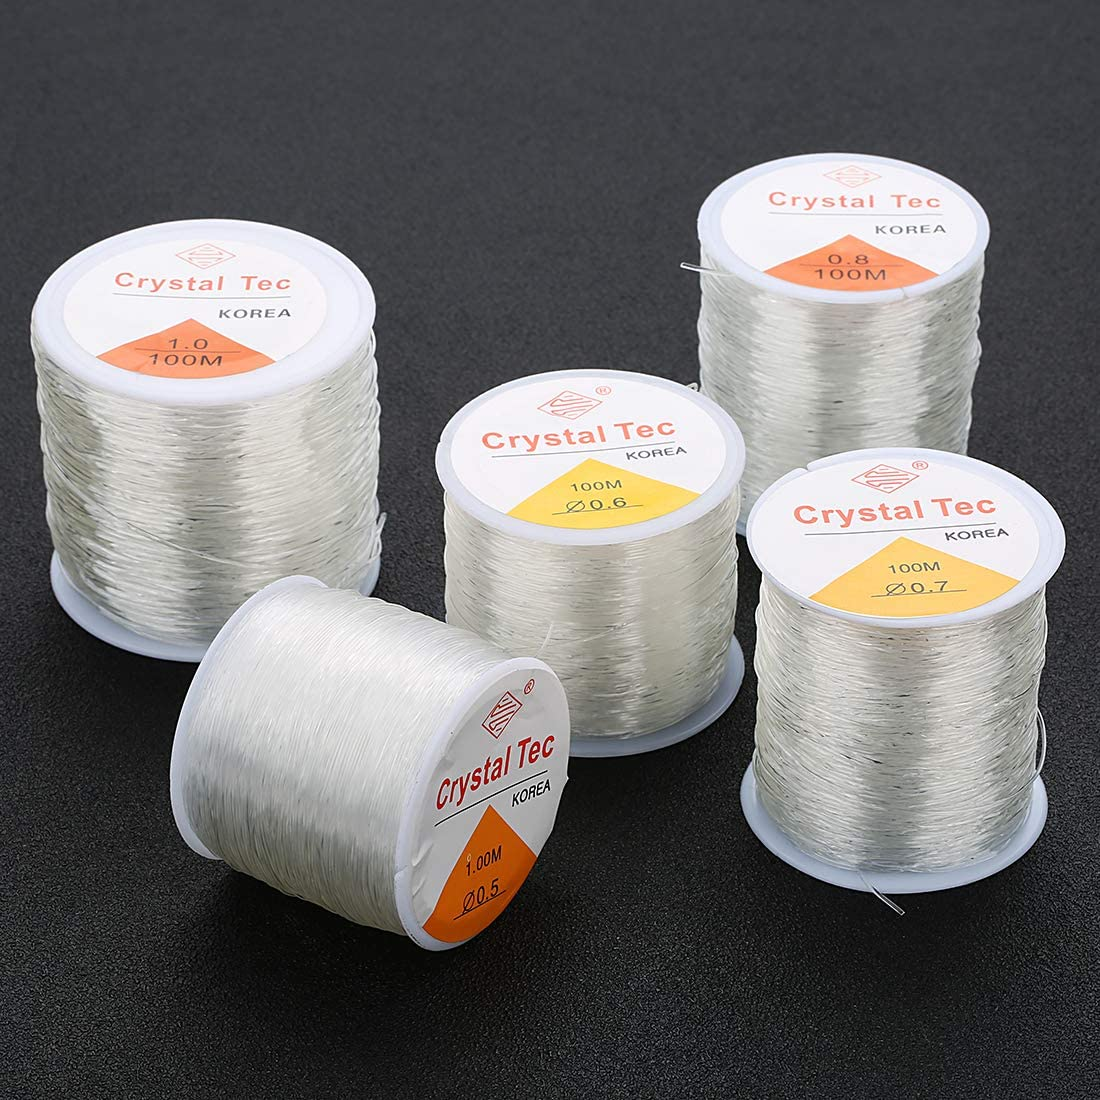 1.2 mm Crystal Tec Transparent Stretch Clear Elastic String Beading Craft Cord